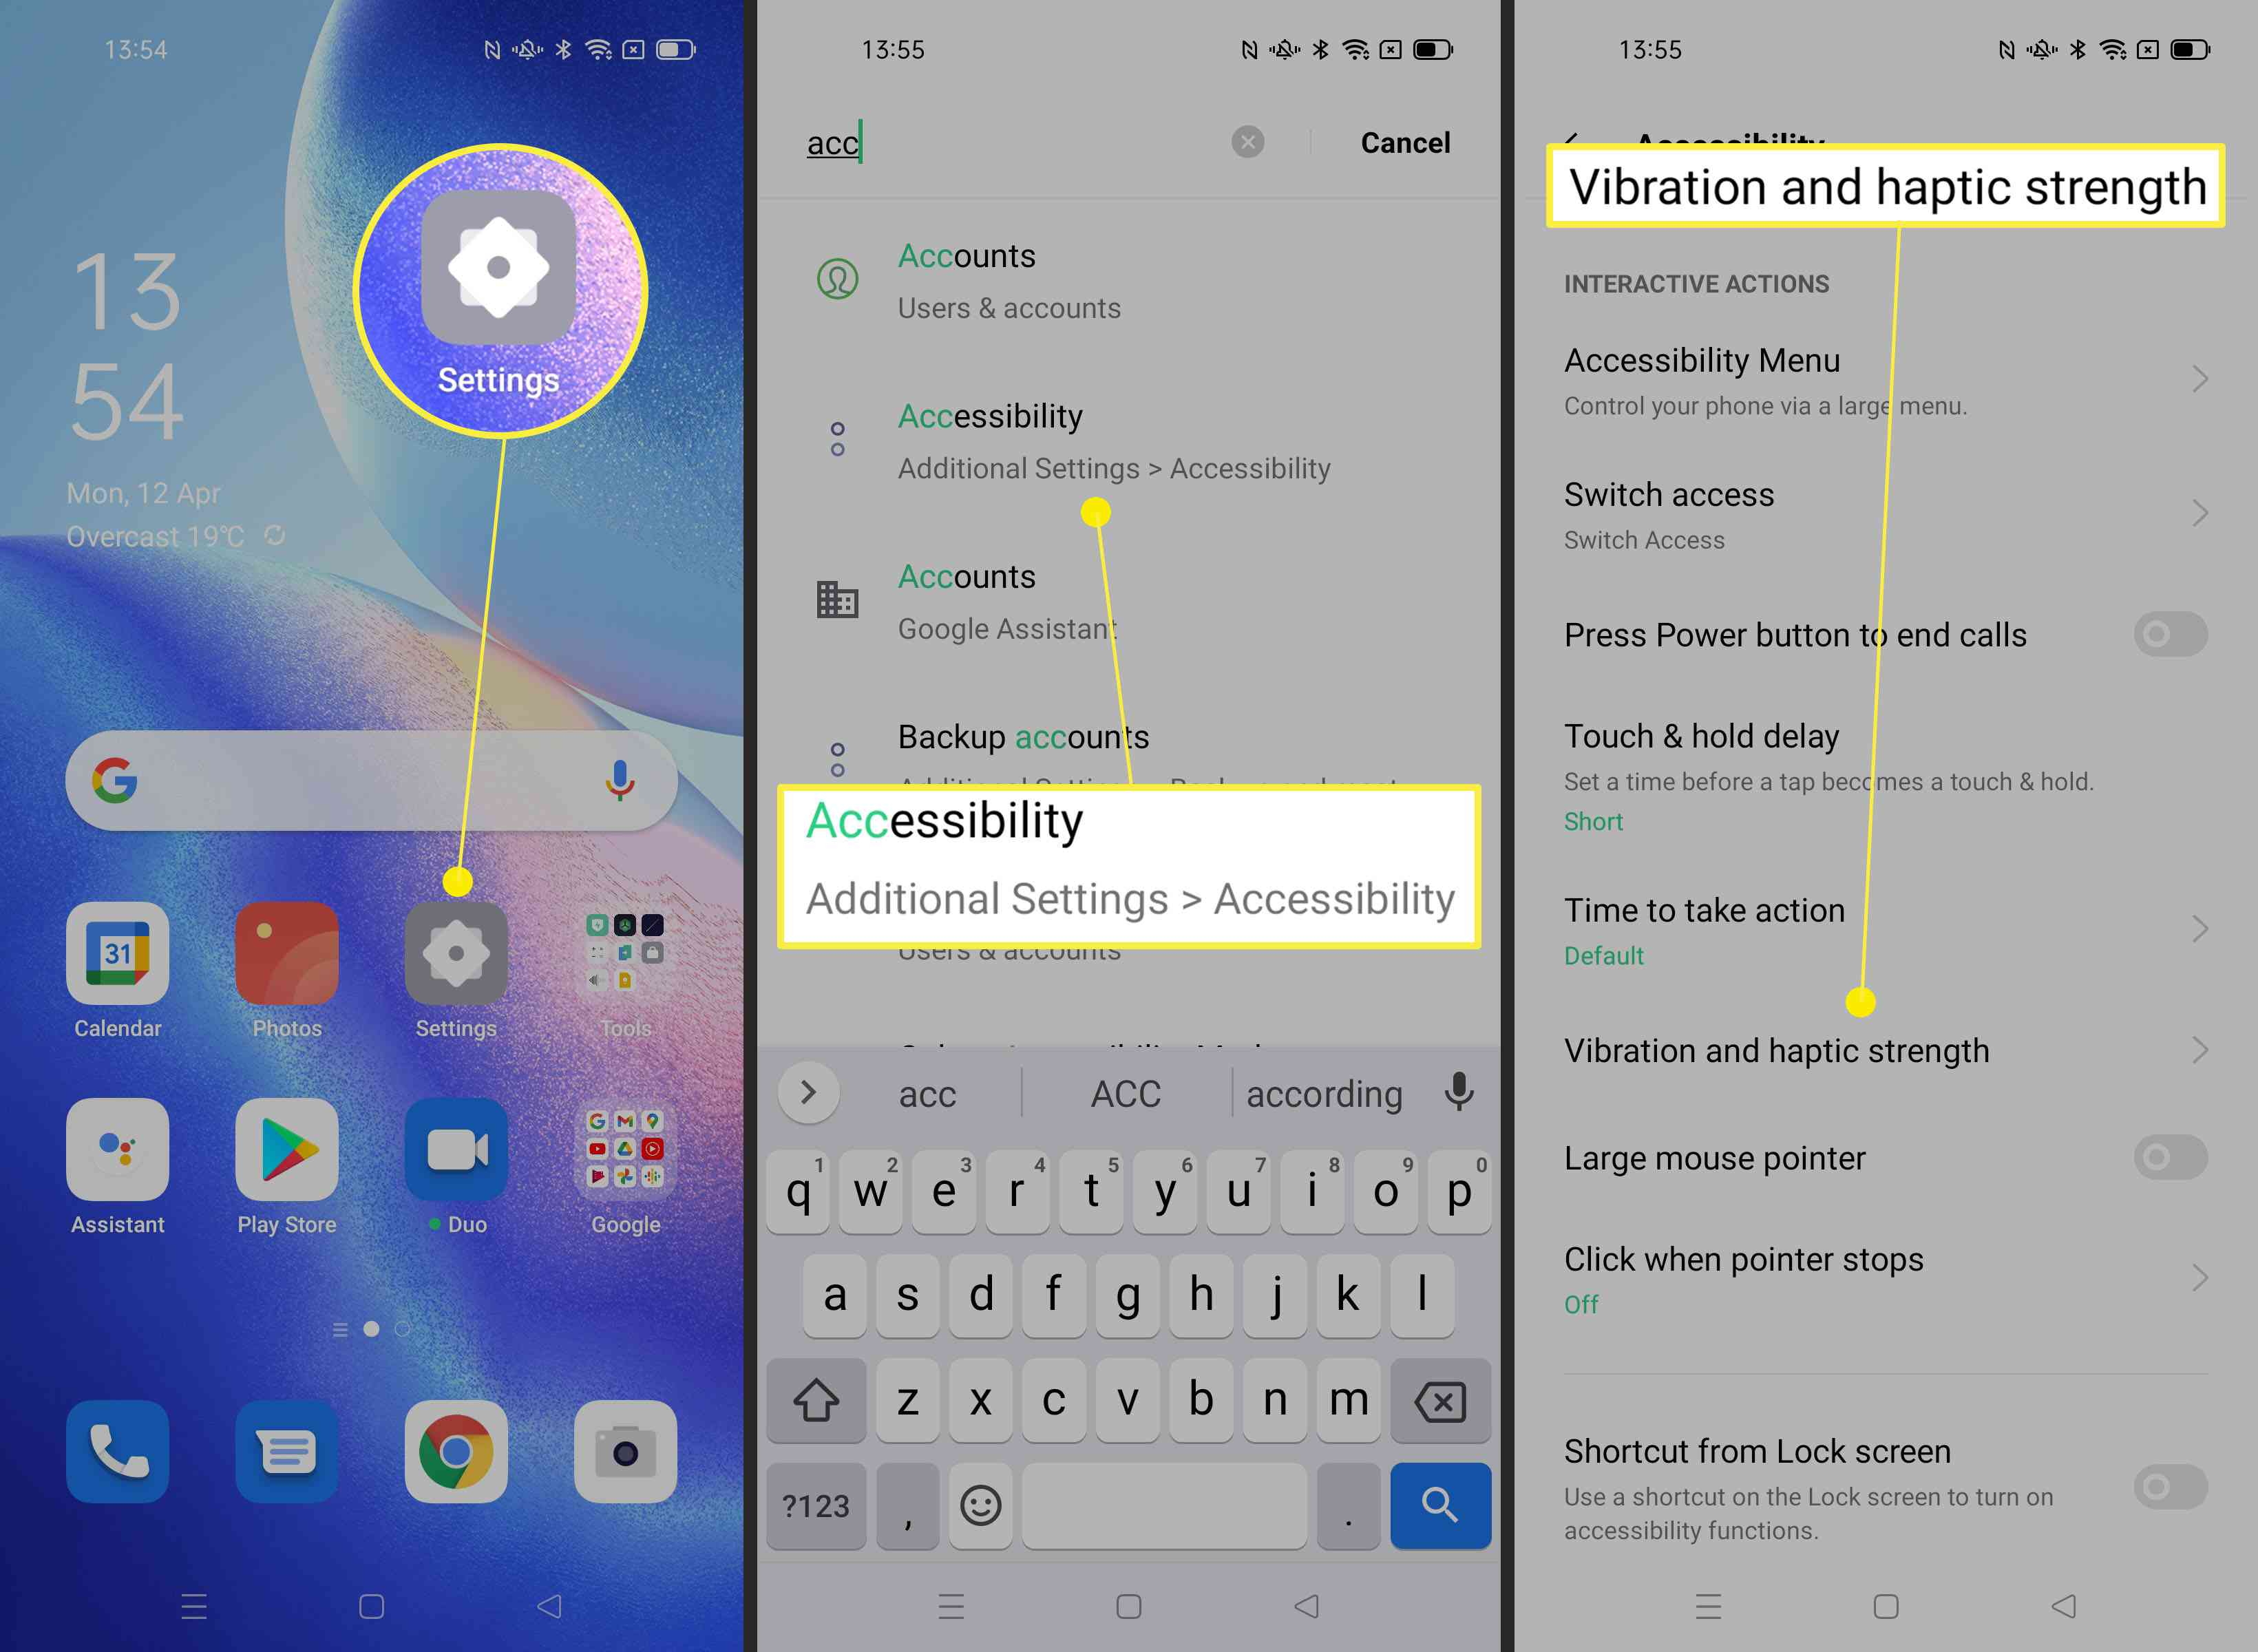 Steps required on Android phone to change vibration settings via Accessibility settings